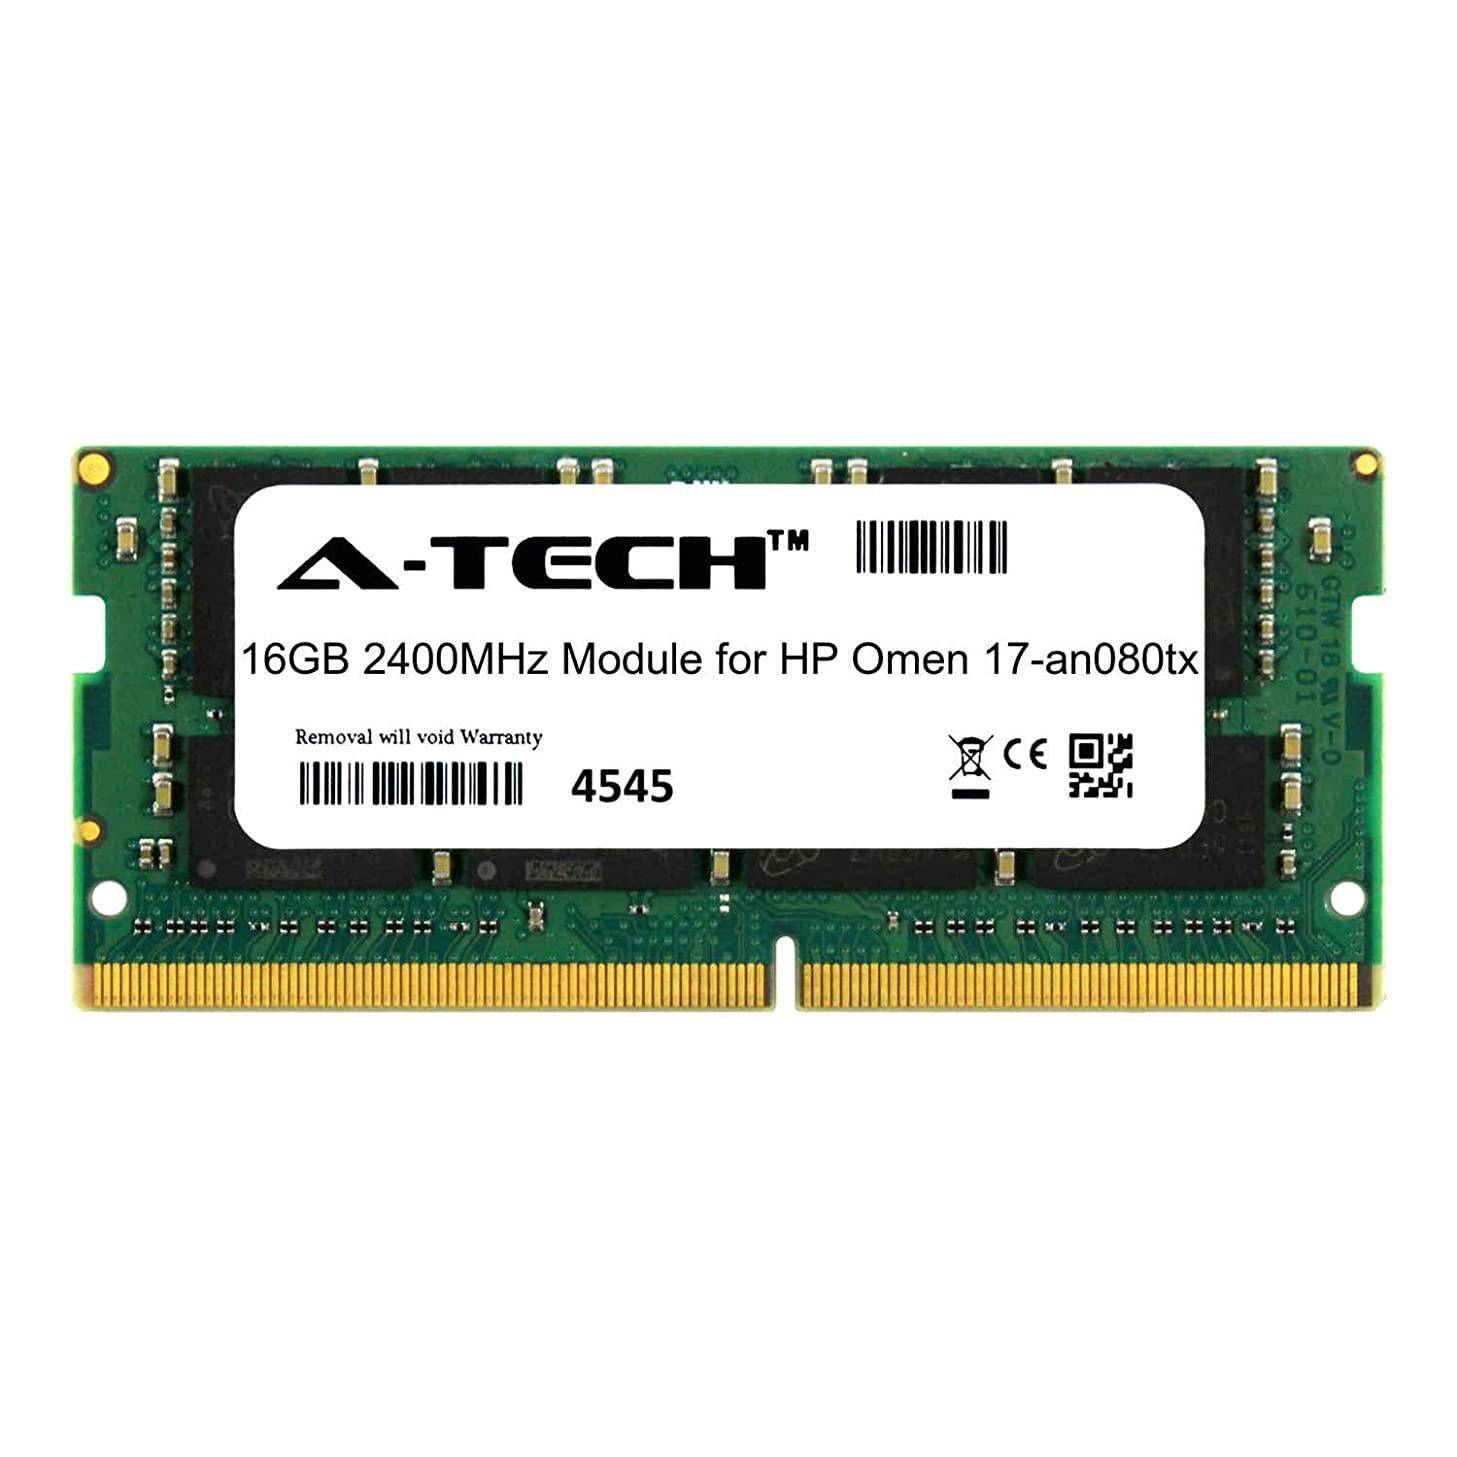 A-Tech 16GB Module for HP Omen 17-an080tx Laptop & Notebook Compatible DDR4 2400Mhz Memory Ram (ATMS281095A25831X1)